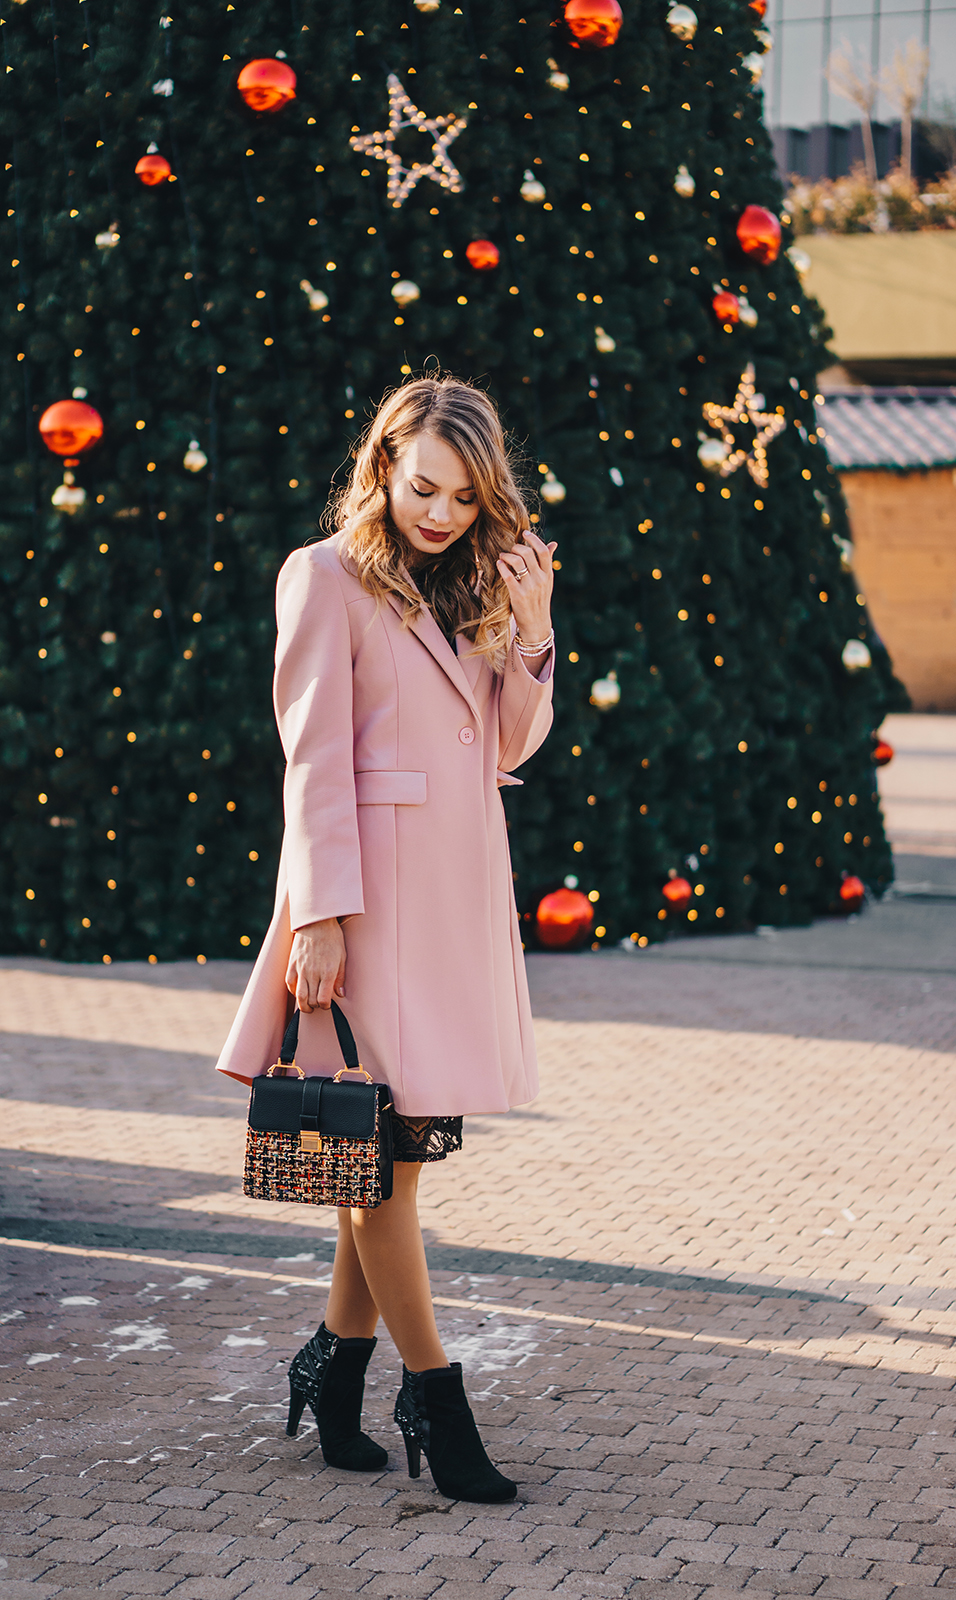 little-black-dress-pink-coat-christmas-outfit-pink-wish-9